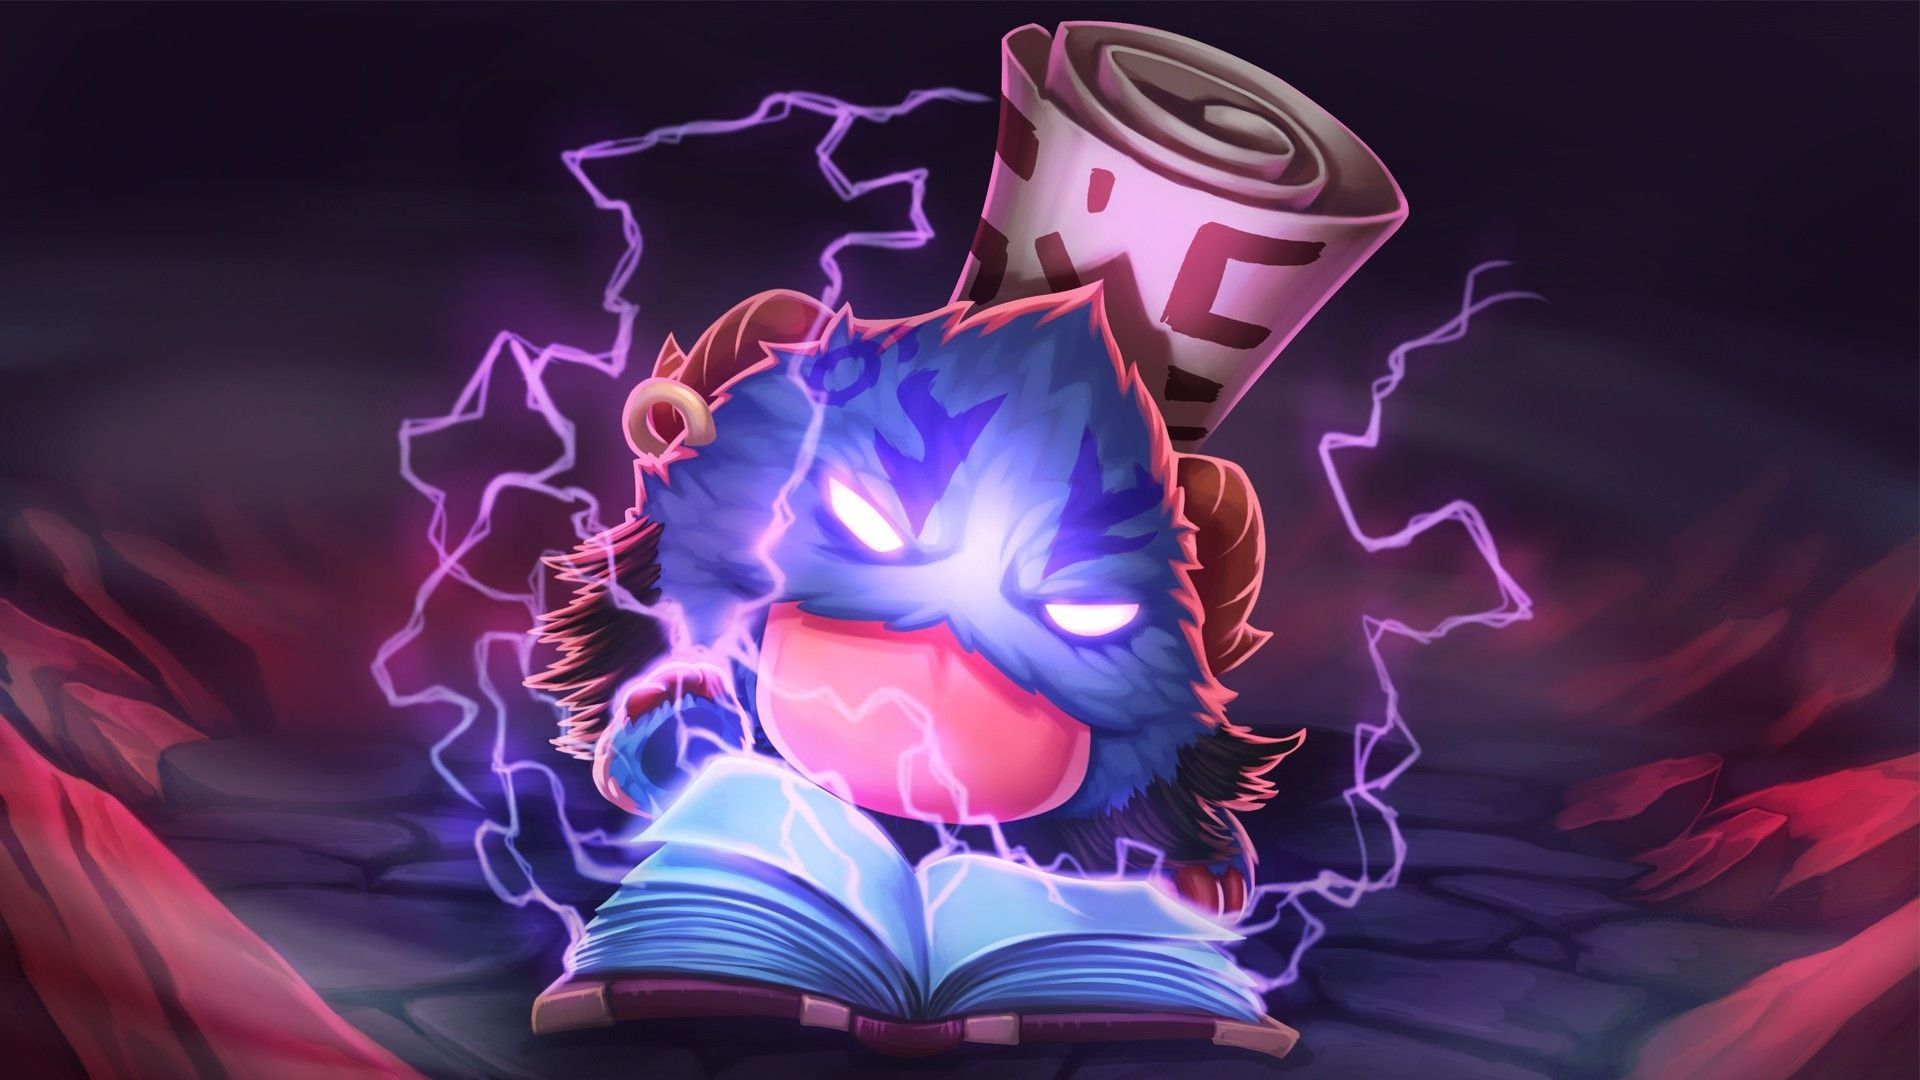 Ryze Hd Live Wallpapers Android Apps On Google Play Lol League Of Legends League Of Legends Characters League Of Legends